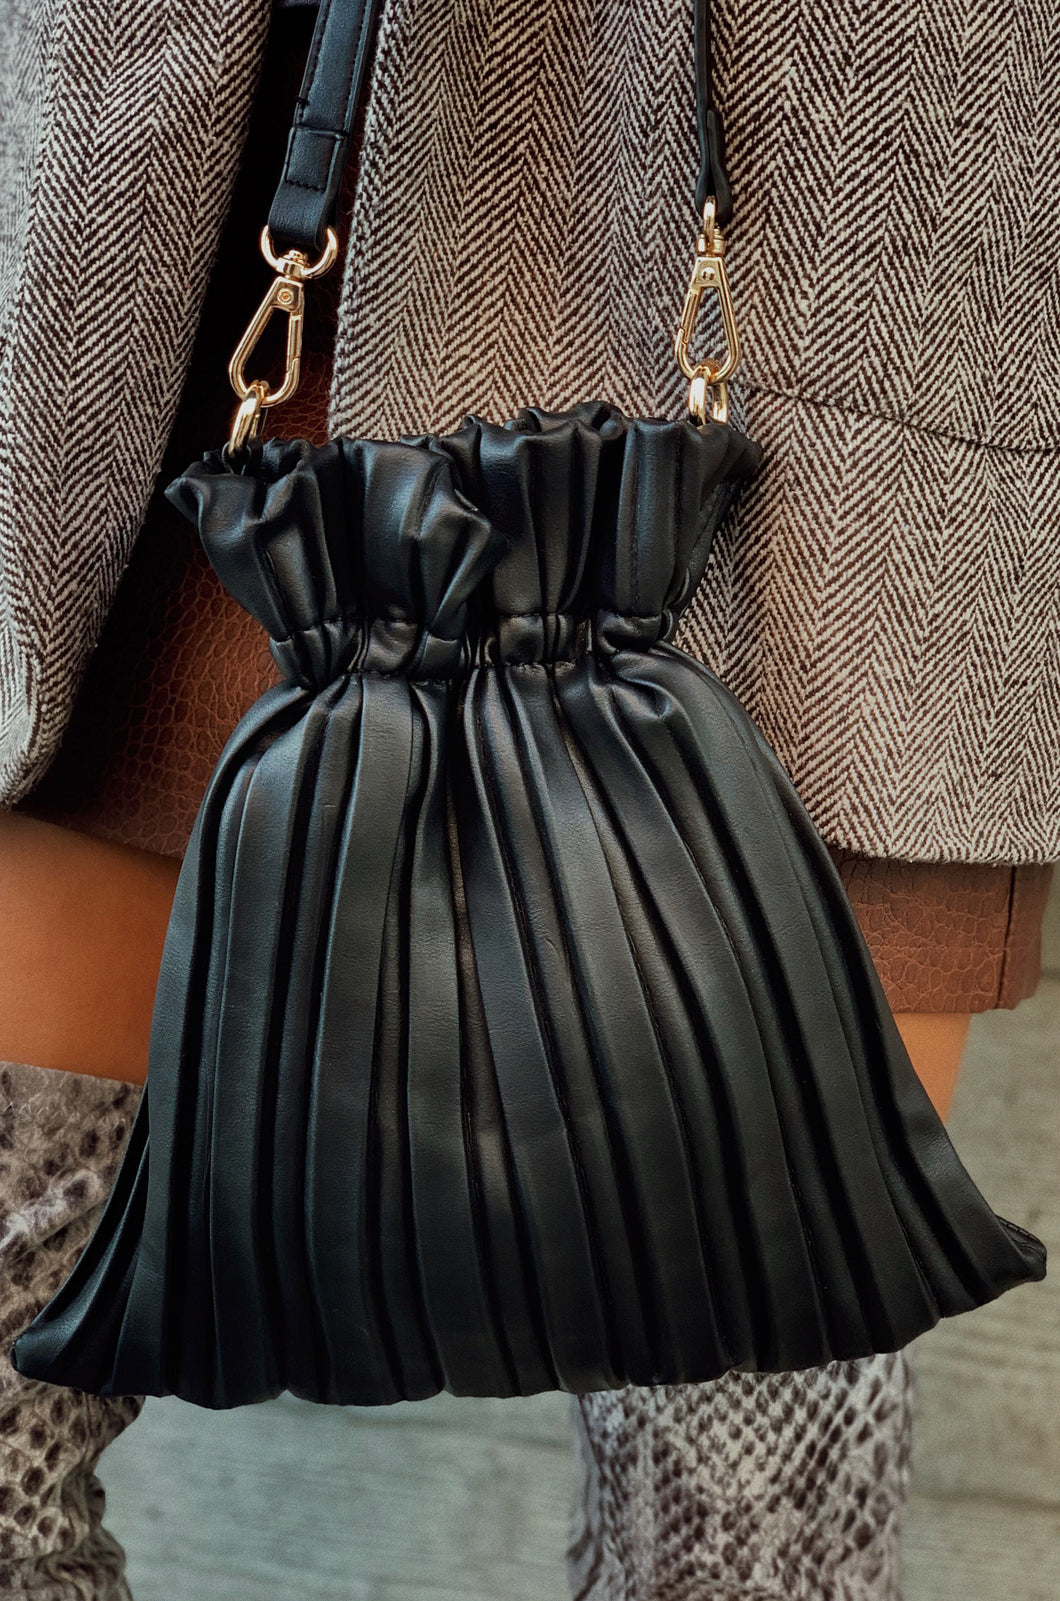 Lorna Bag - Black